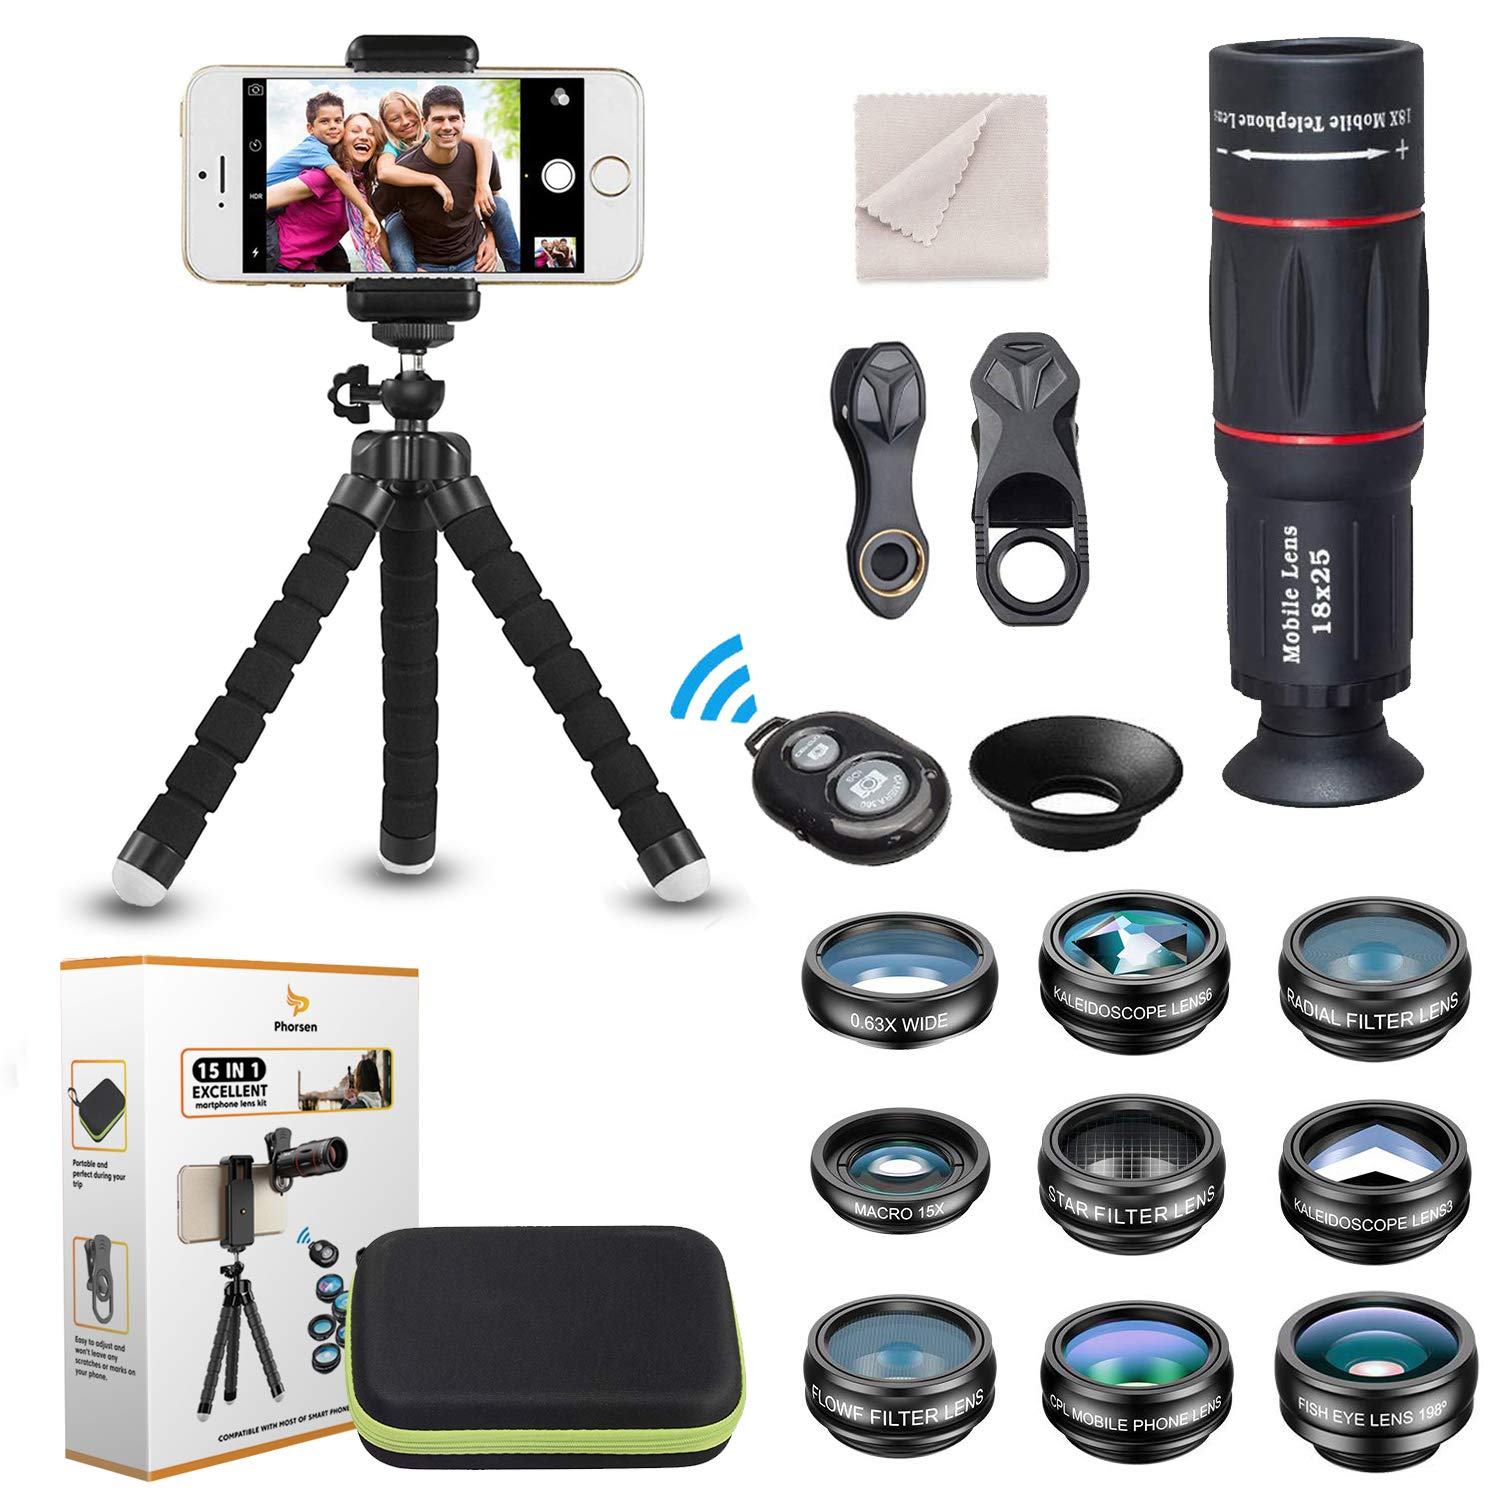 15 in 1 Universal Phone Camera Lens Kit 18X Telephoto lens Wide Angle lens,Macro Lens, Fisheye lens,Kaleidoscope 3/6 lens, CPL Flow Star Radial Filter, Tripod, Remote Shutter for most of Smartphone